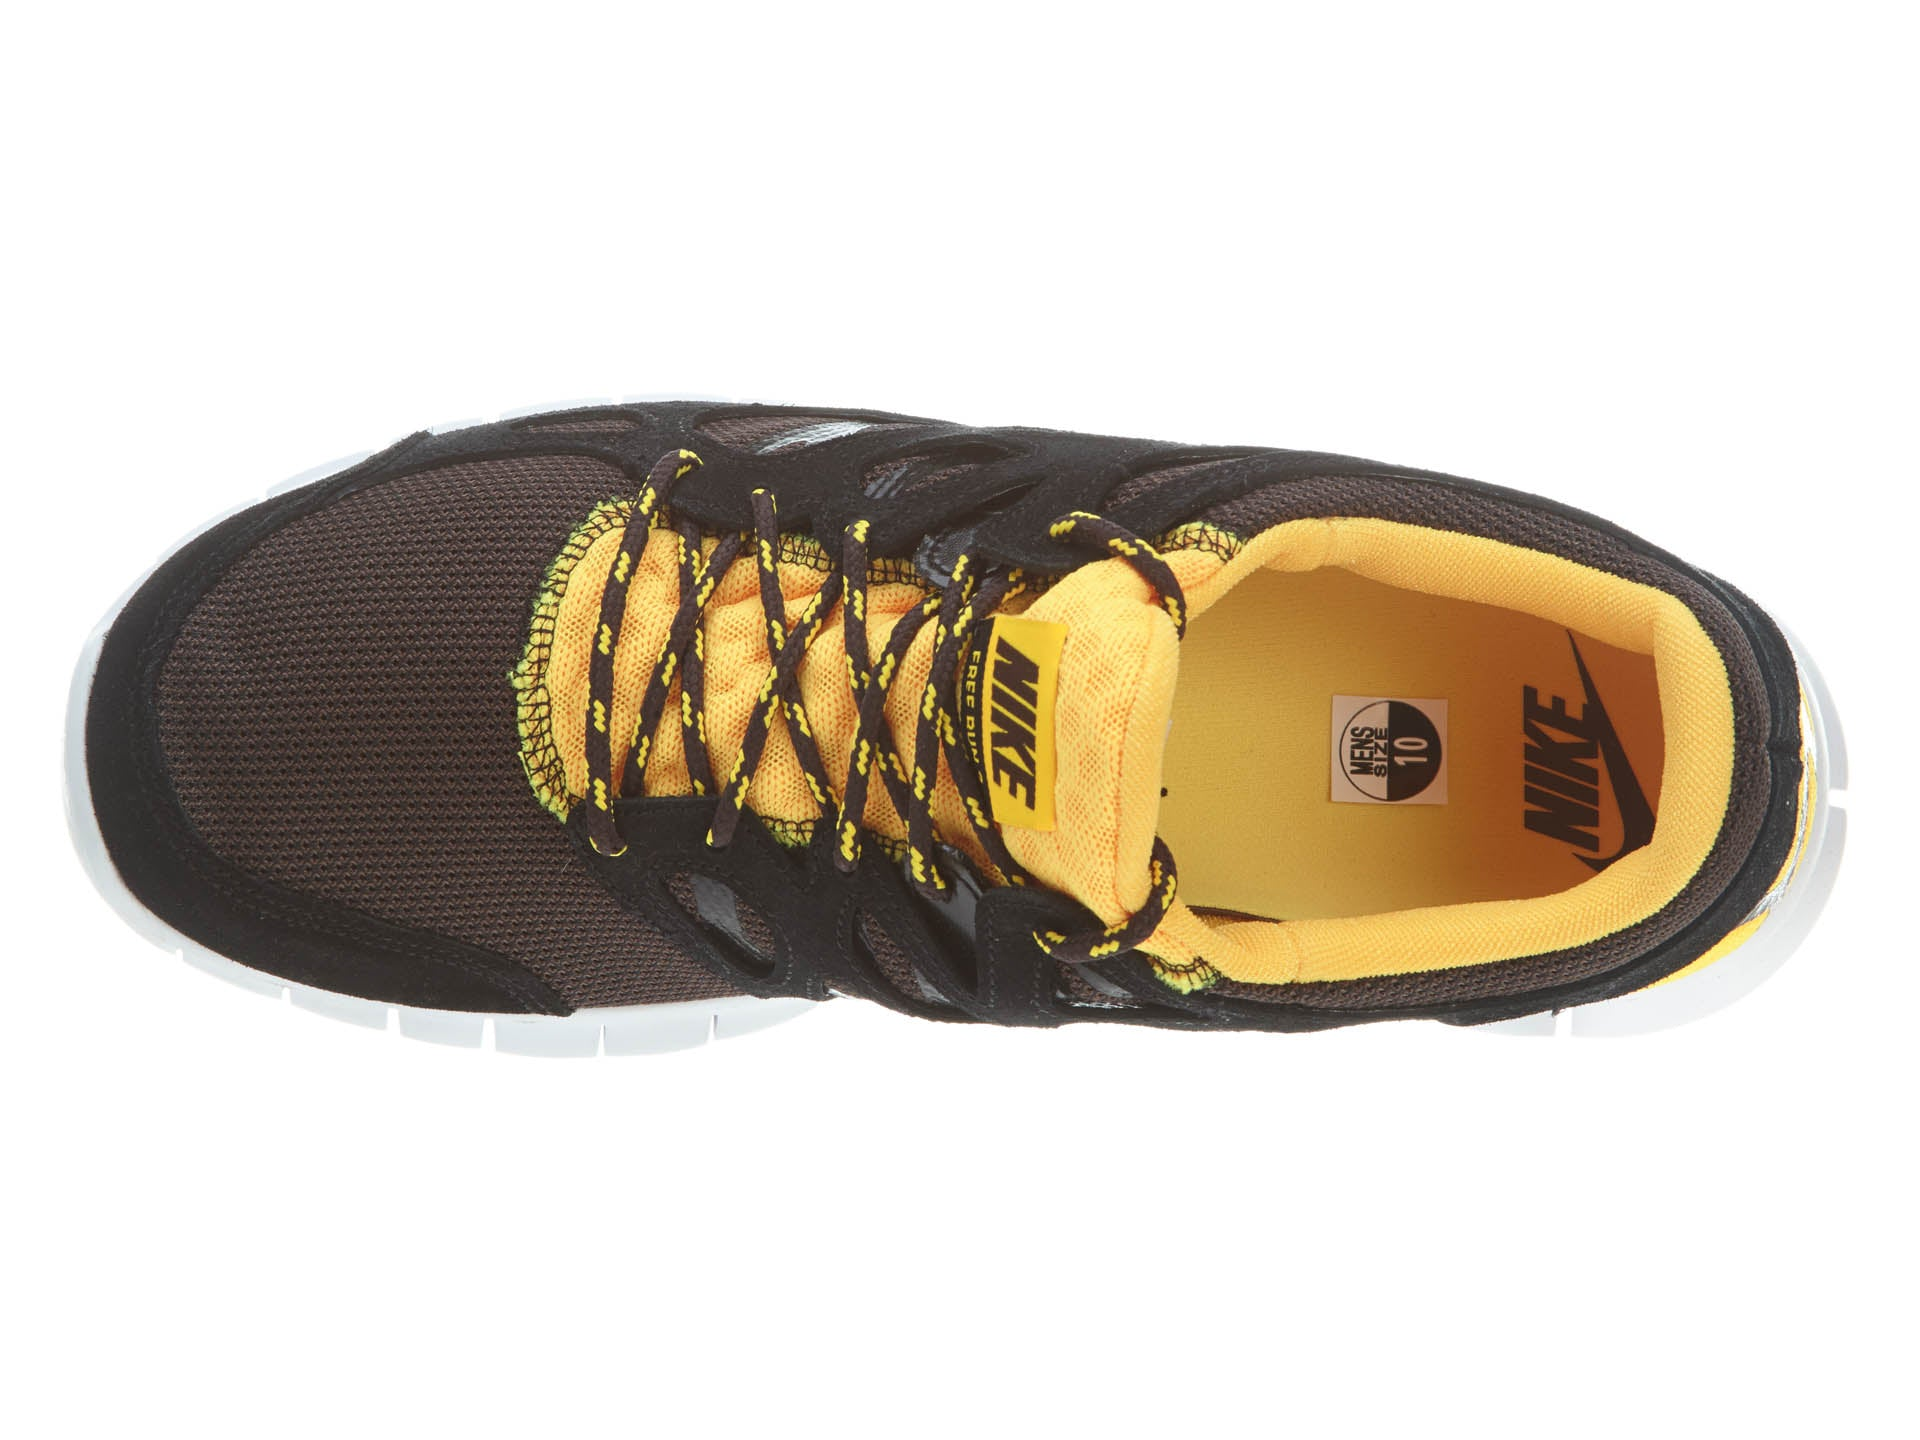 7ced85be56a8 Nike Free Run 2 Mens Style 537732